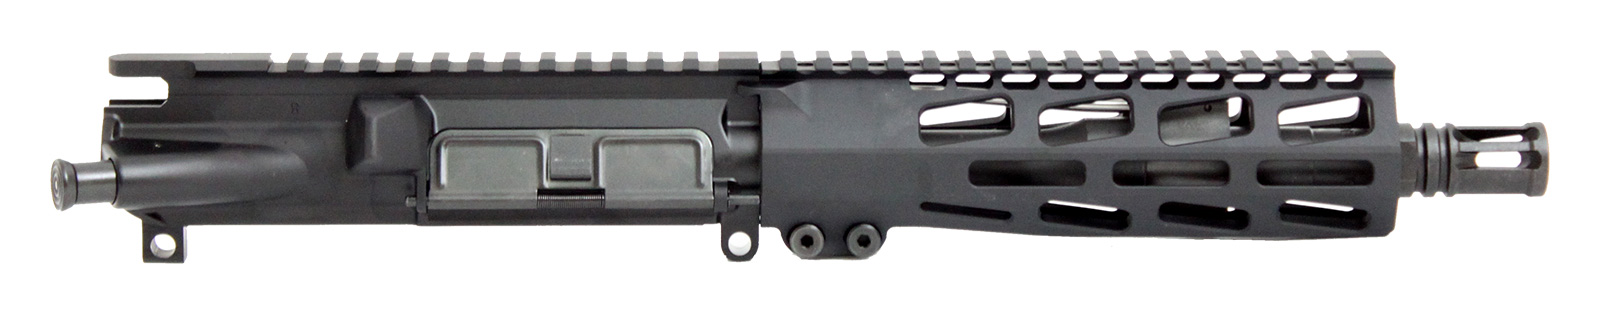 ar15-upper-assembly-7-5-inch-223-wylde-17-160028